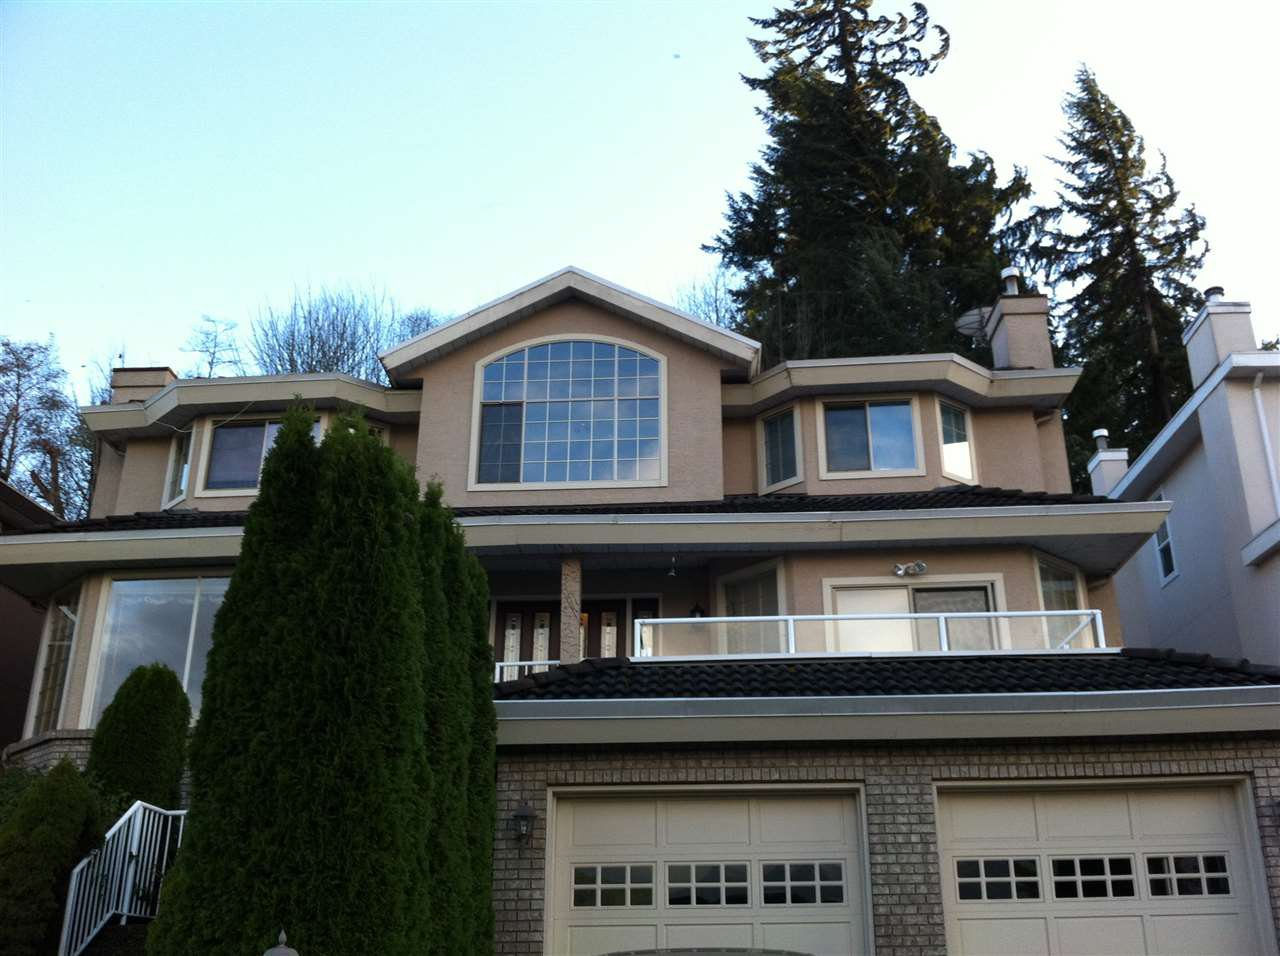 Main Photo: 20 SHORELINE CIRCLE in Port Moody: College Park PM House for sale : MLS®# R2016142